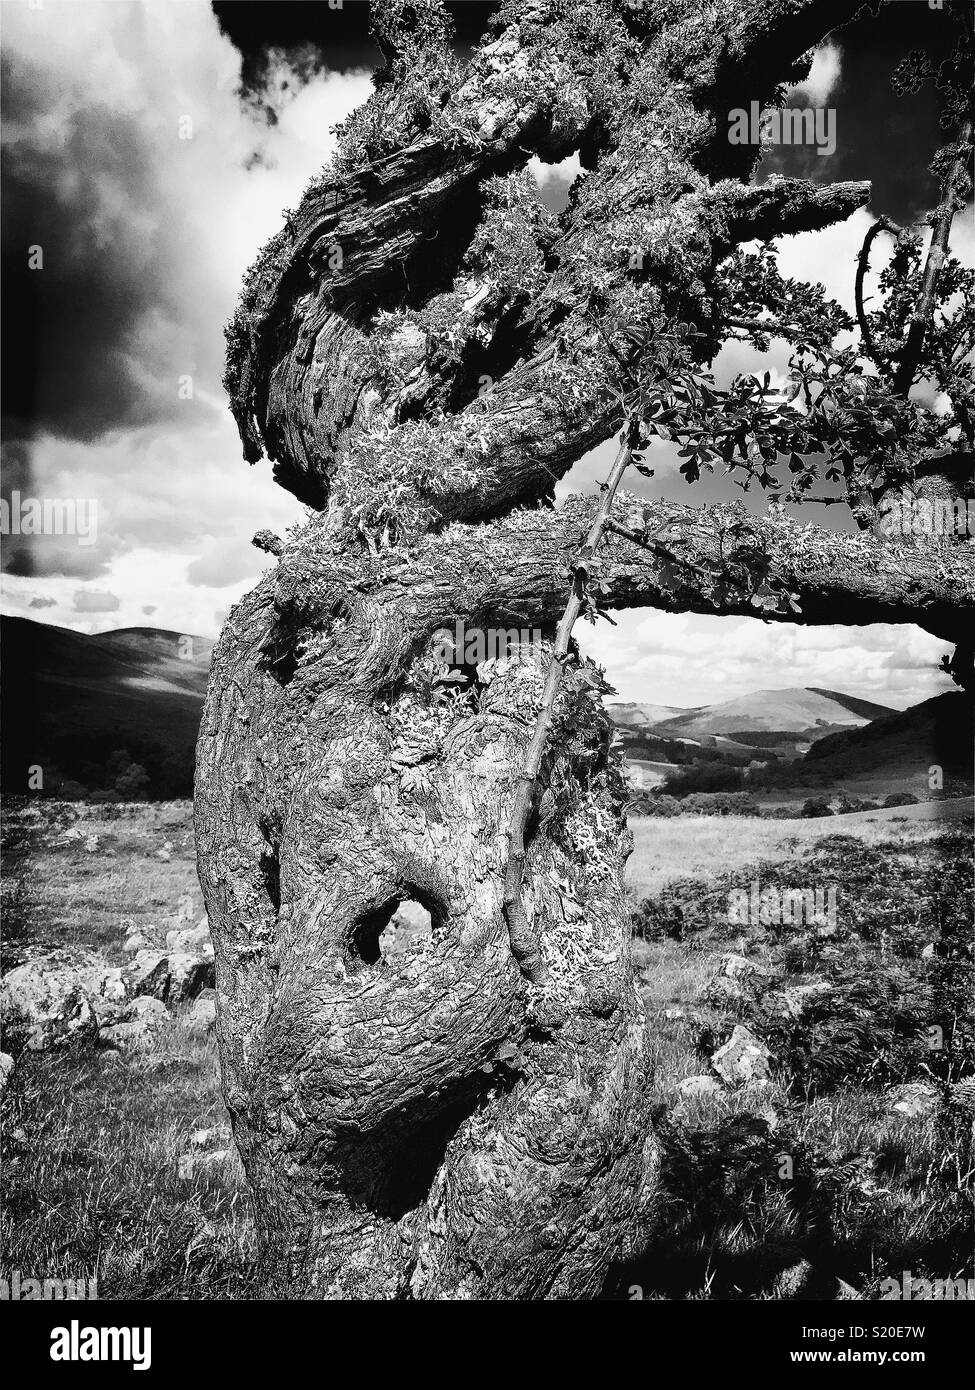 B&W Hipstamatic shot of ancient wind blown tree with bent branches and belly button in it's trunk - Stock Image